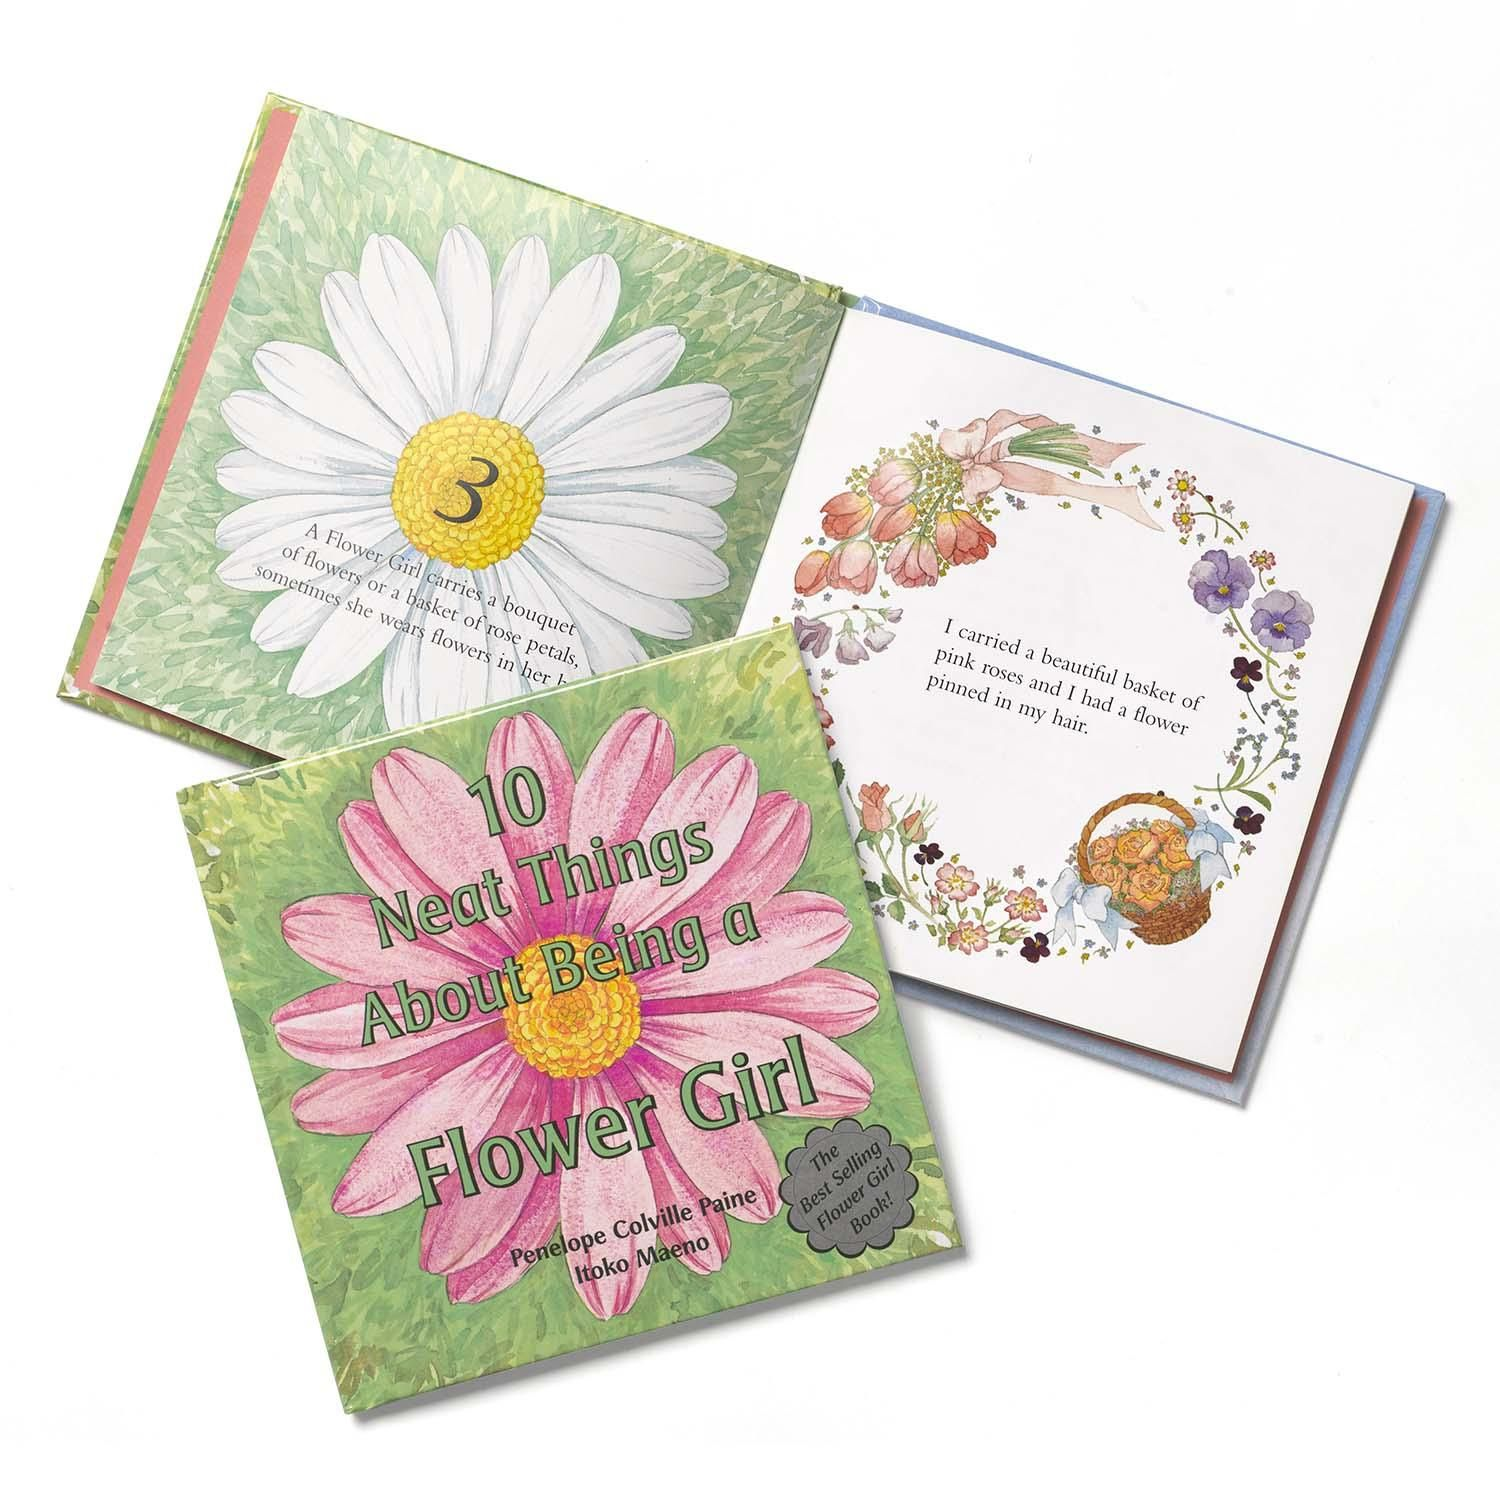 10 Neat Things Flower Girl Book Lists The Top Duties That Make